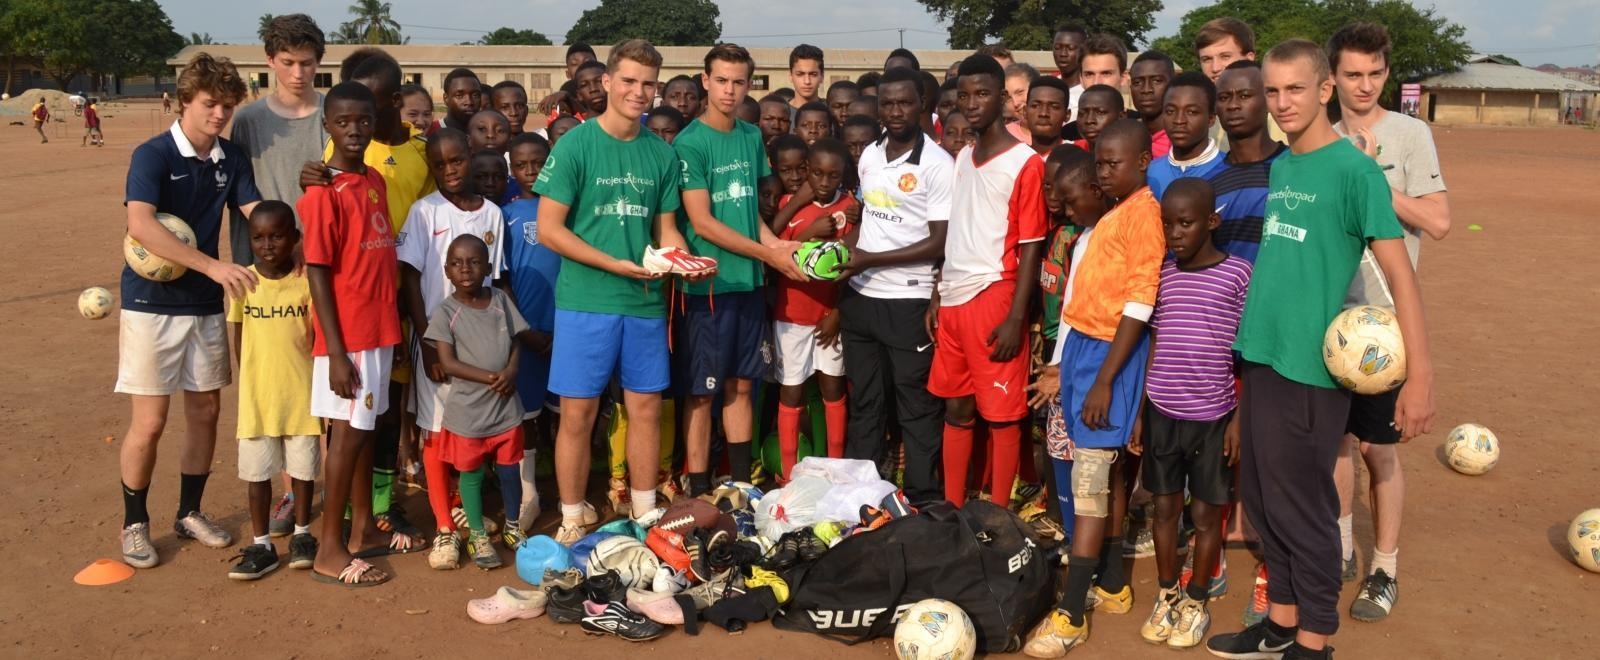 Projects Abroad volunteers taking part in soccer coaching for high school students in Ghana donate new equipment to a local team.